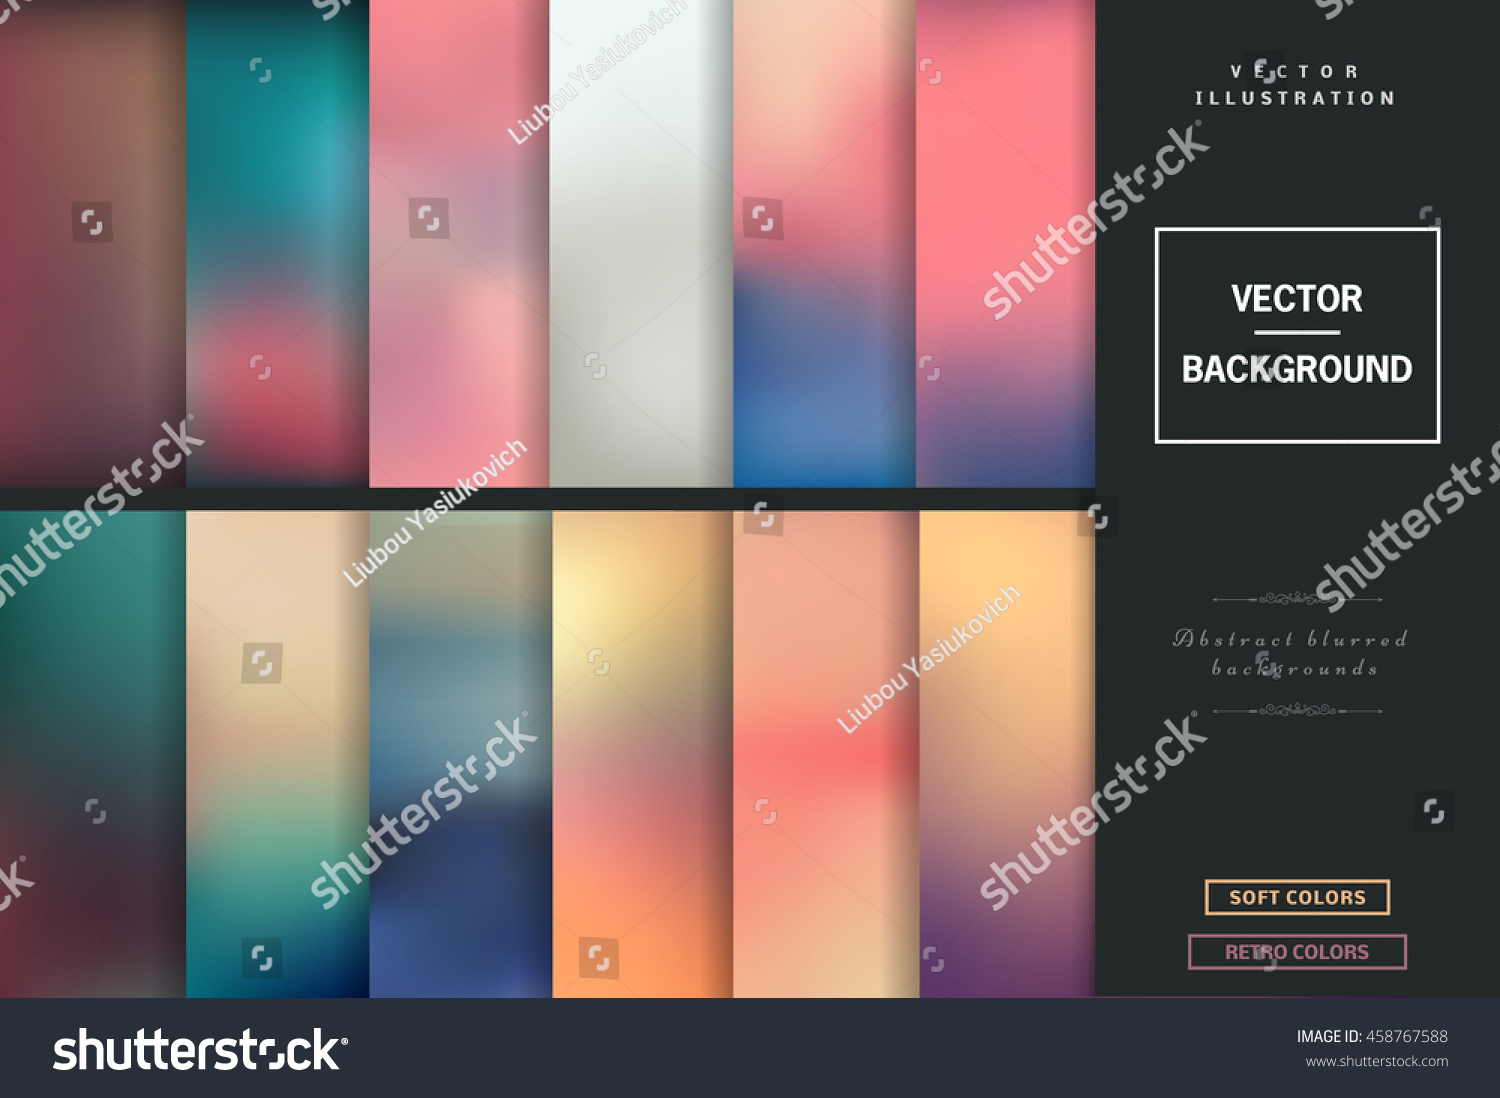 Website soft colors - Abstract Colorful Blurred Vector Backgrounds Elements For Your Website Or Presentation Set With Many